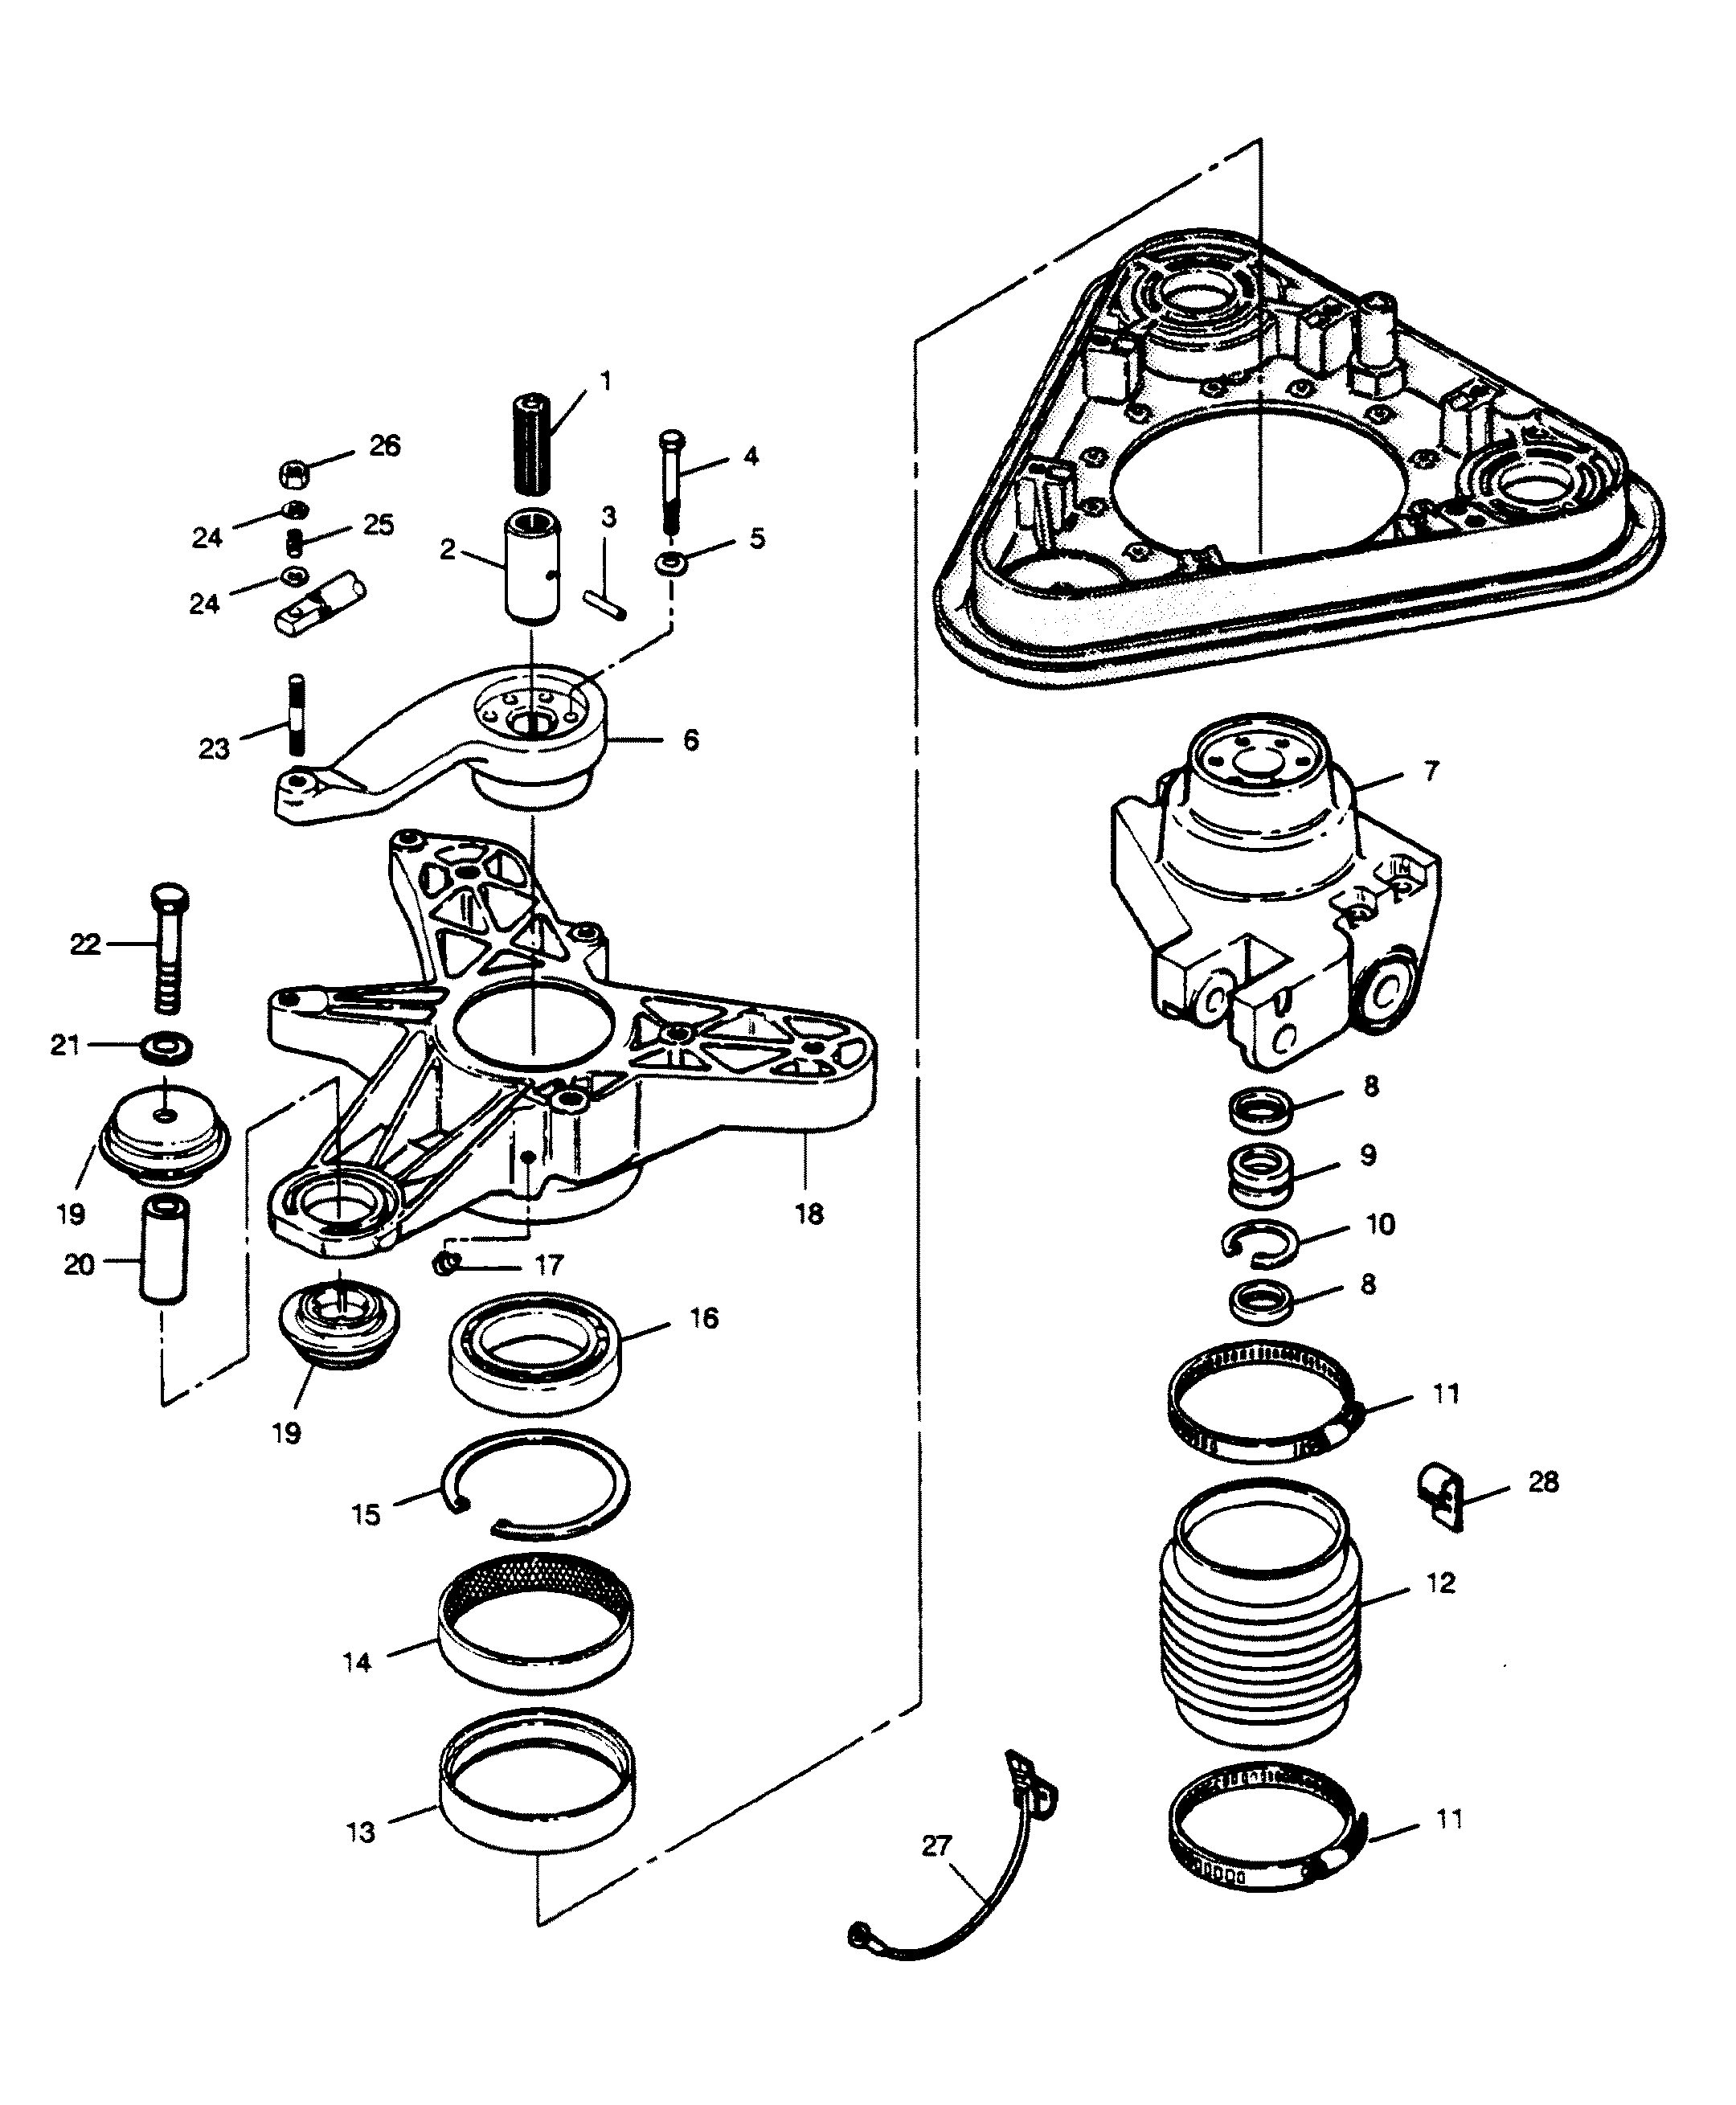 1992 Force 70 Hp Outboard Motor Diagram Wiring Library 85 Mount Detailed Schematic Diagrams Evinrud